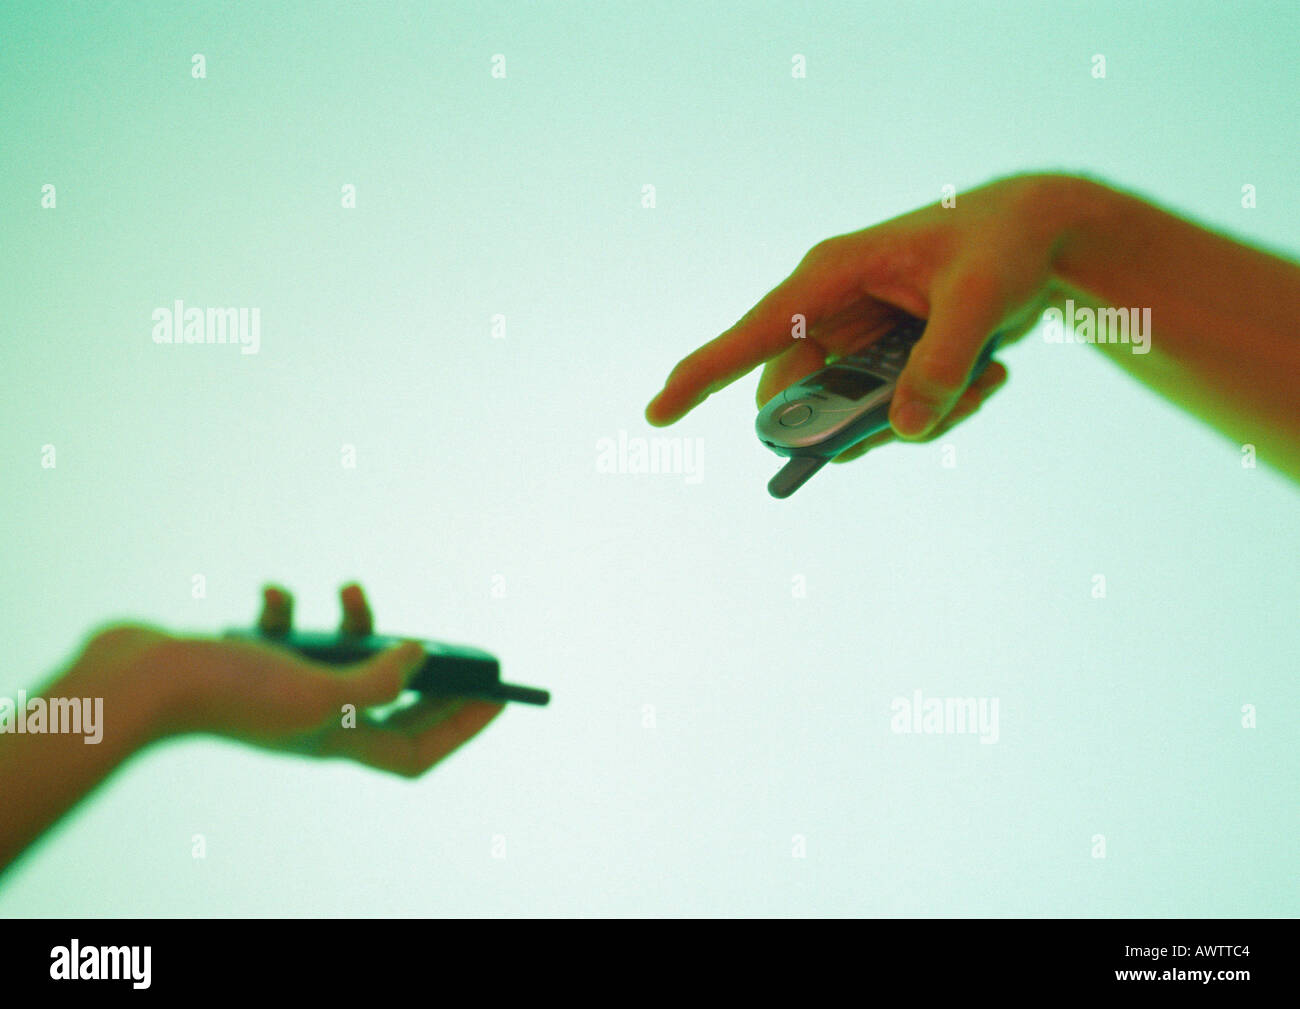 Two hands holding cell phones, one gesturing to other - Stock Image